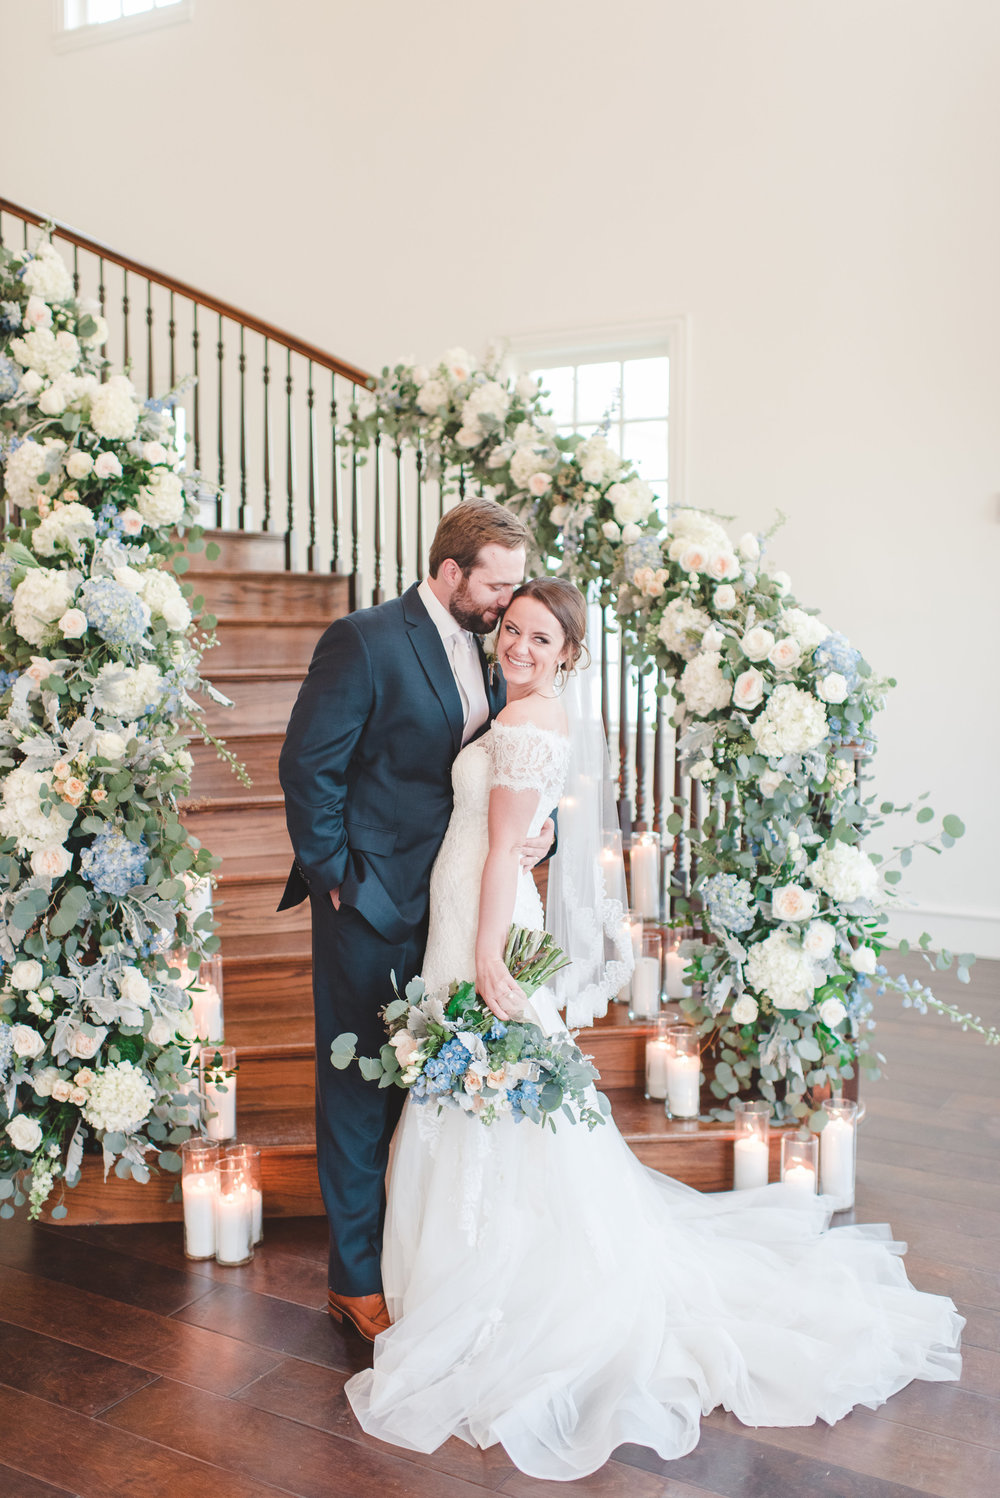 Floral Wedding Staircase Photo Backdrop | Rose Gold and Dusty Blue Winter Wedding in Dallas, TX